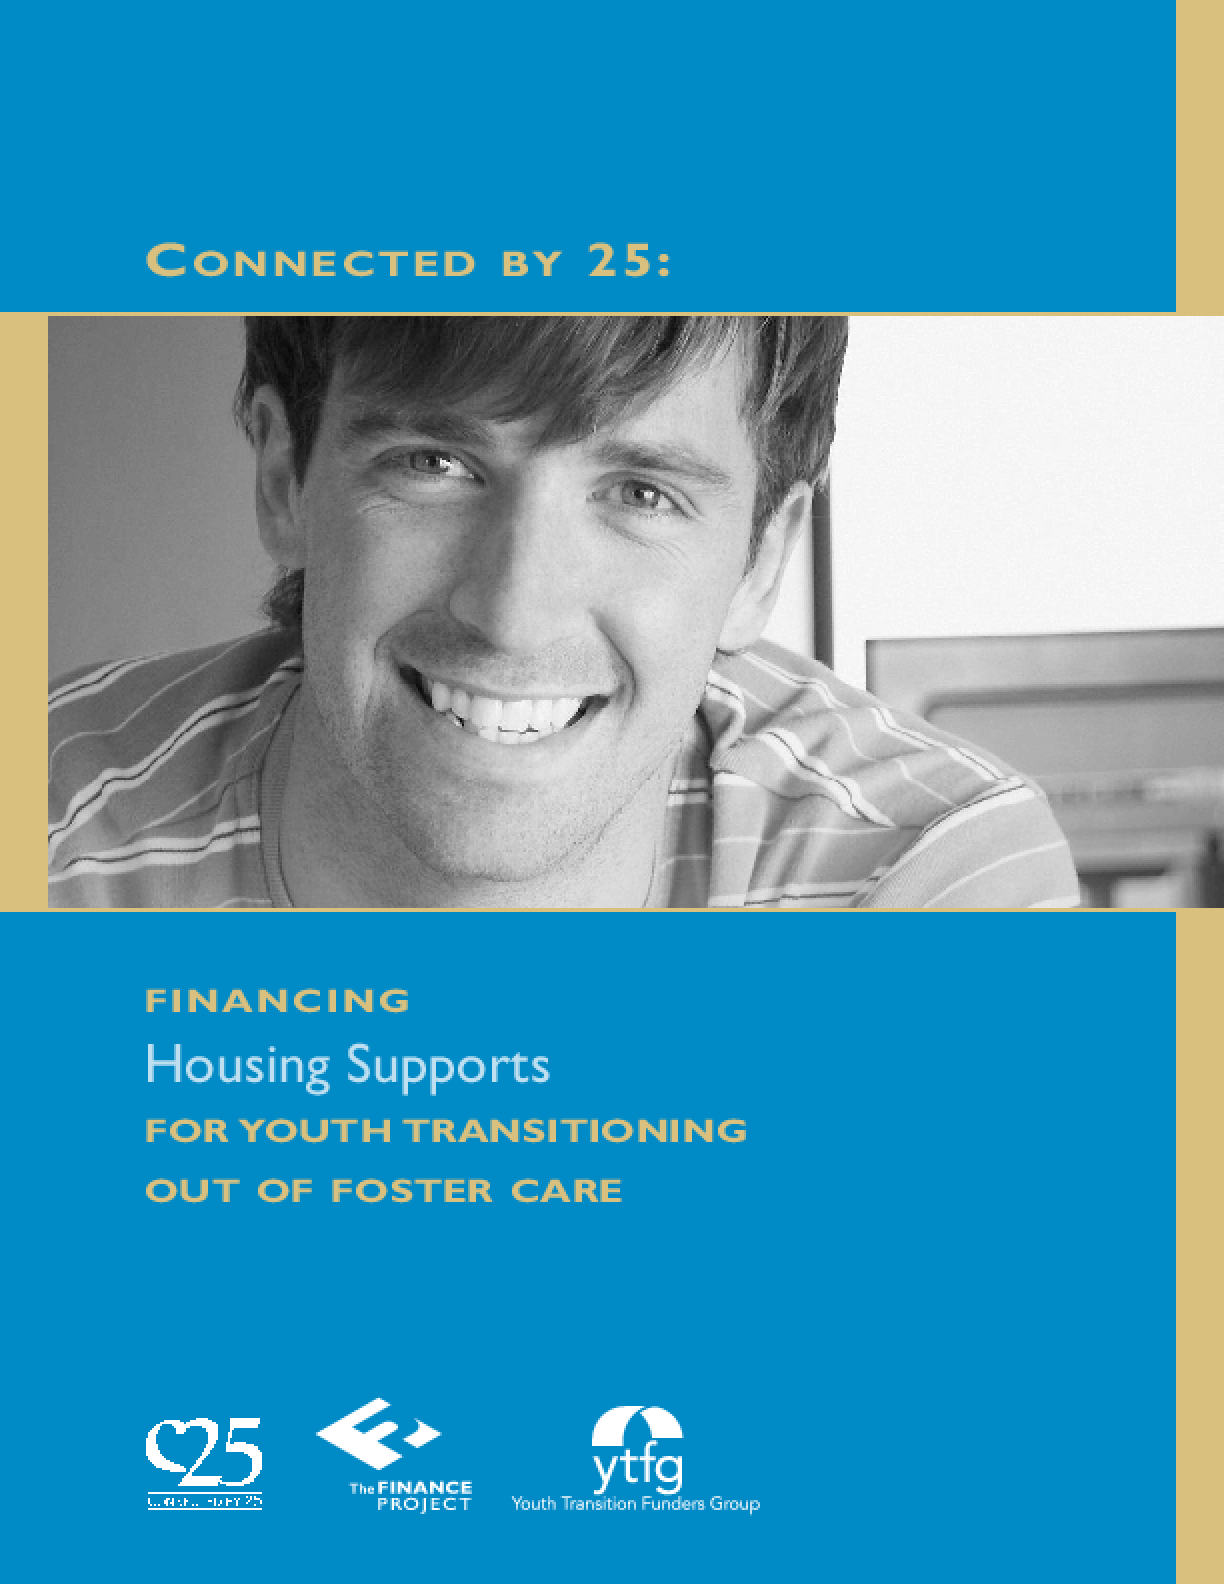 Financing Housing Supports for Youth Transitioning Out of Foster Care